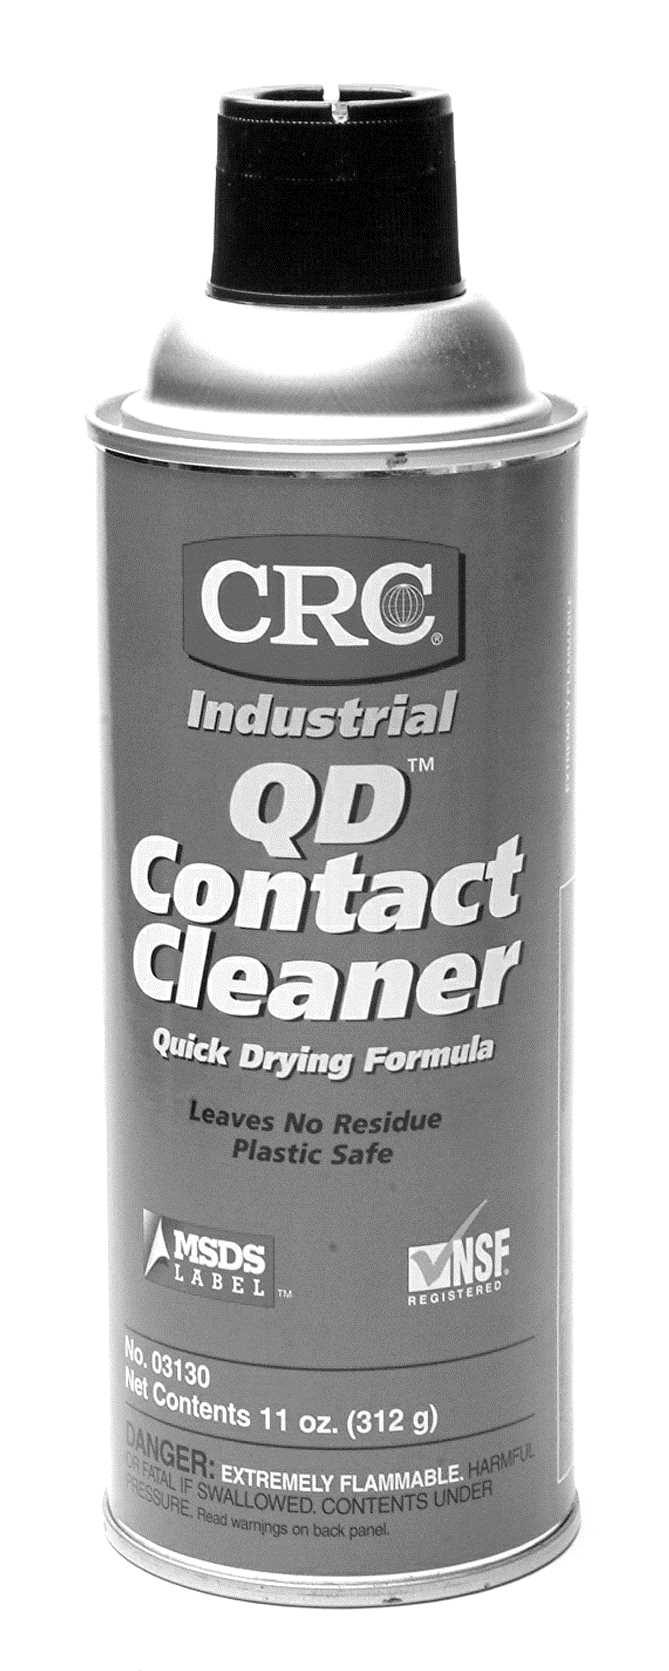 Cleaners Amp Degreasers Weaver Distributing